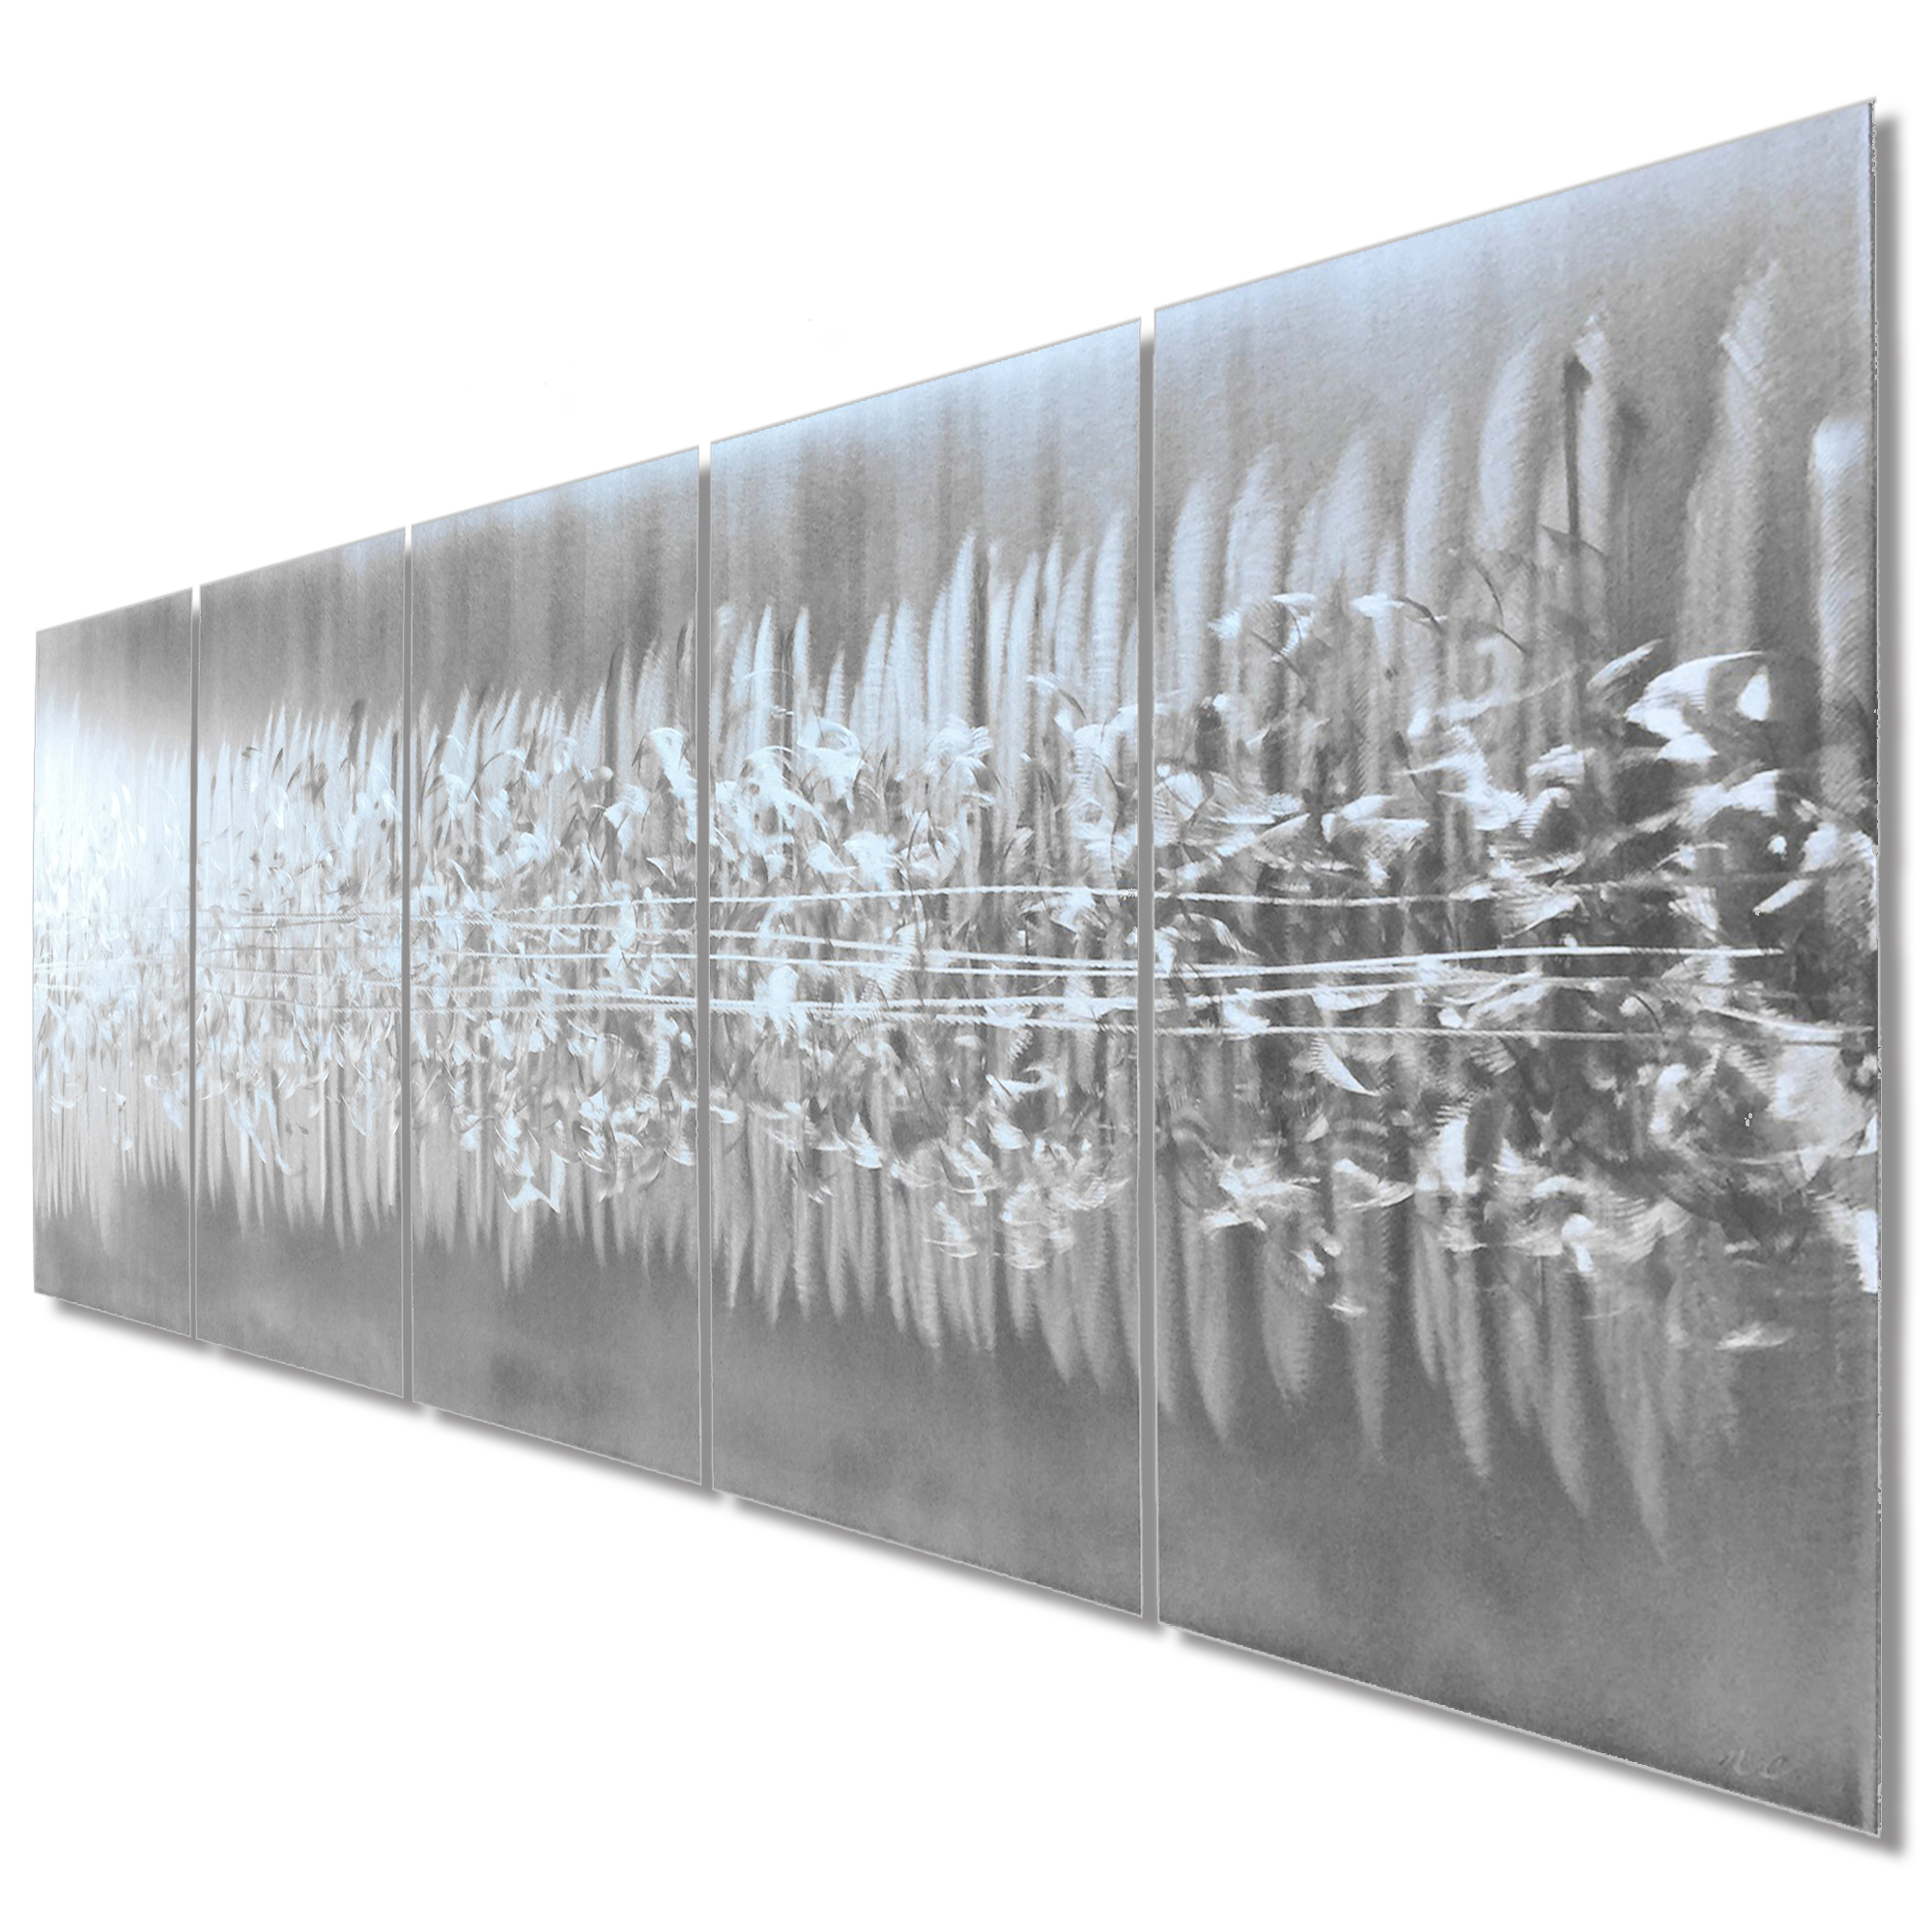 Abstract Metal Art 'Static' - Modern Urban Artwork on Natural Aluminum - Image 2